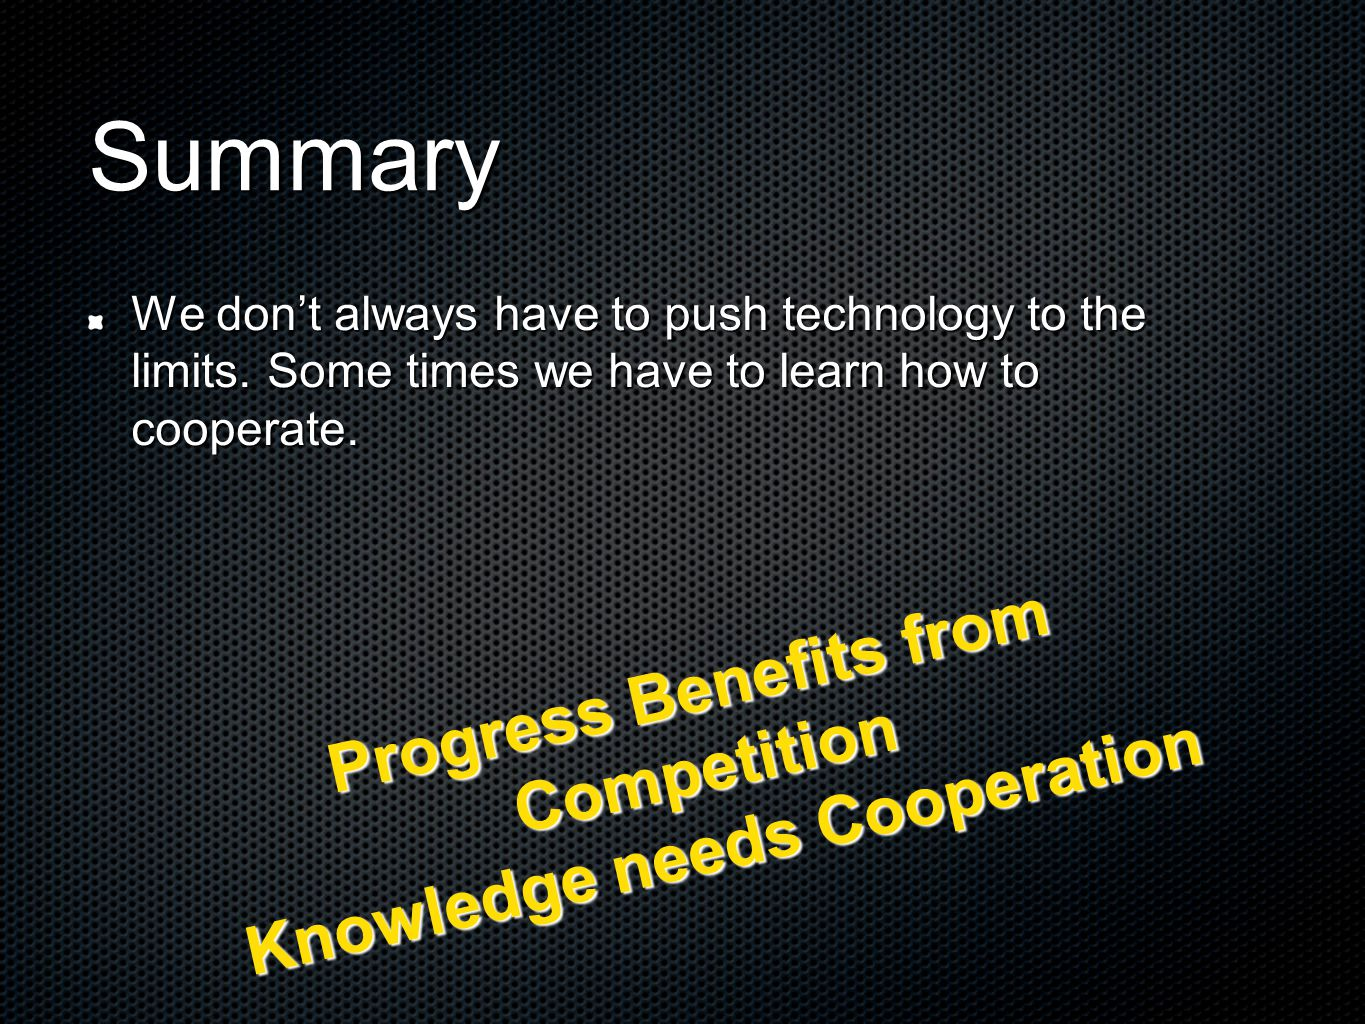 Summary We don't always have to push technology to the limits.